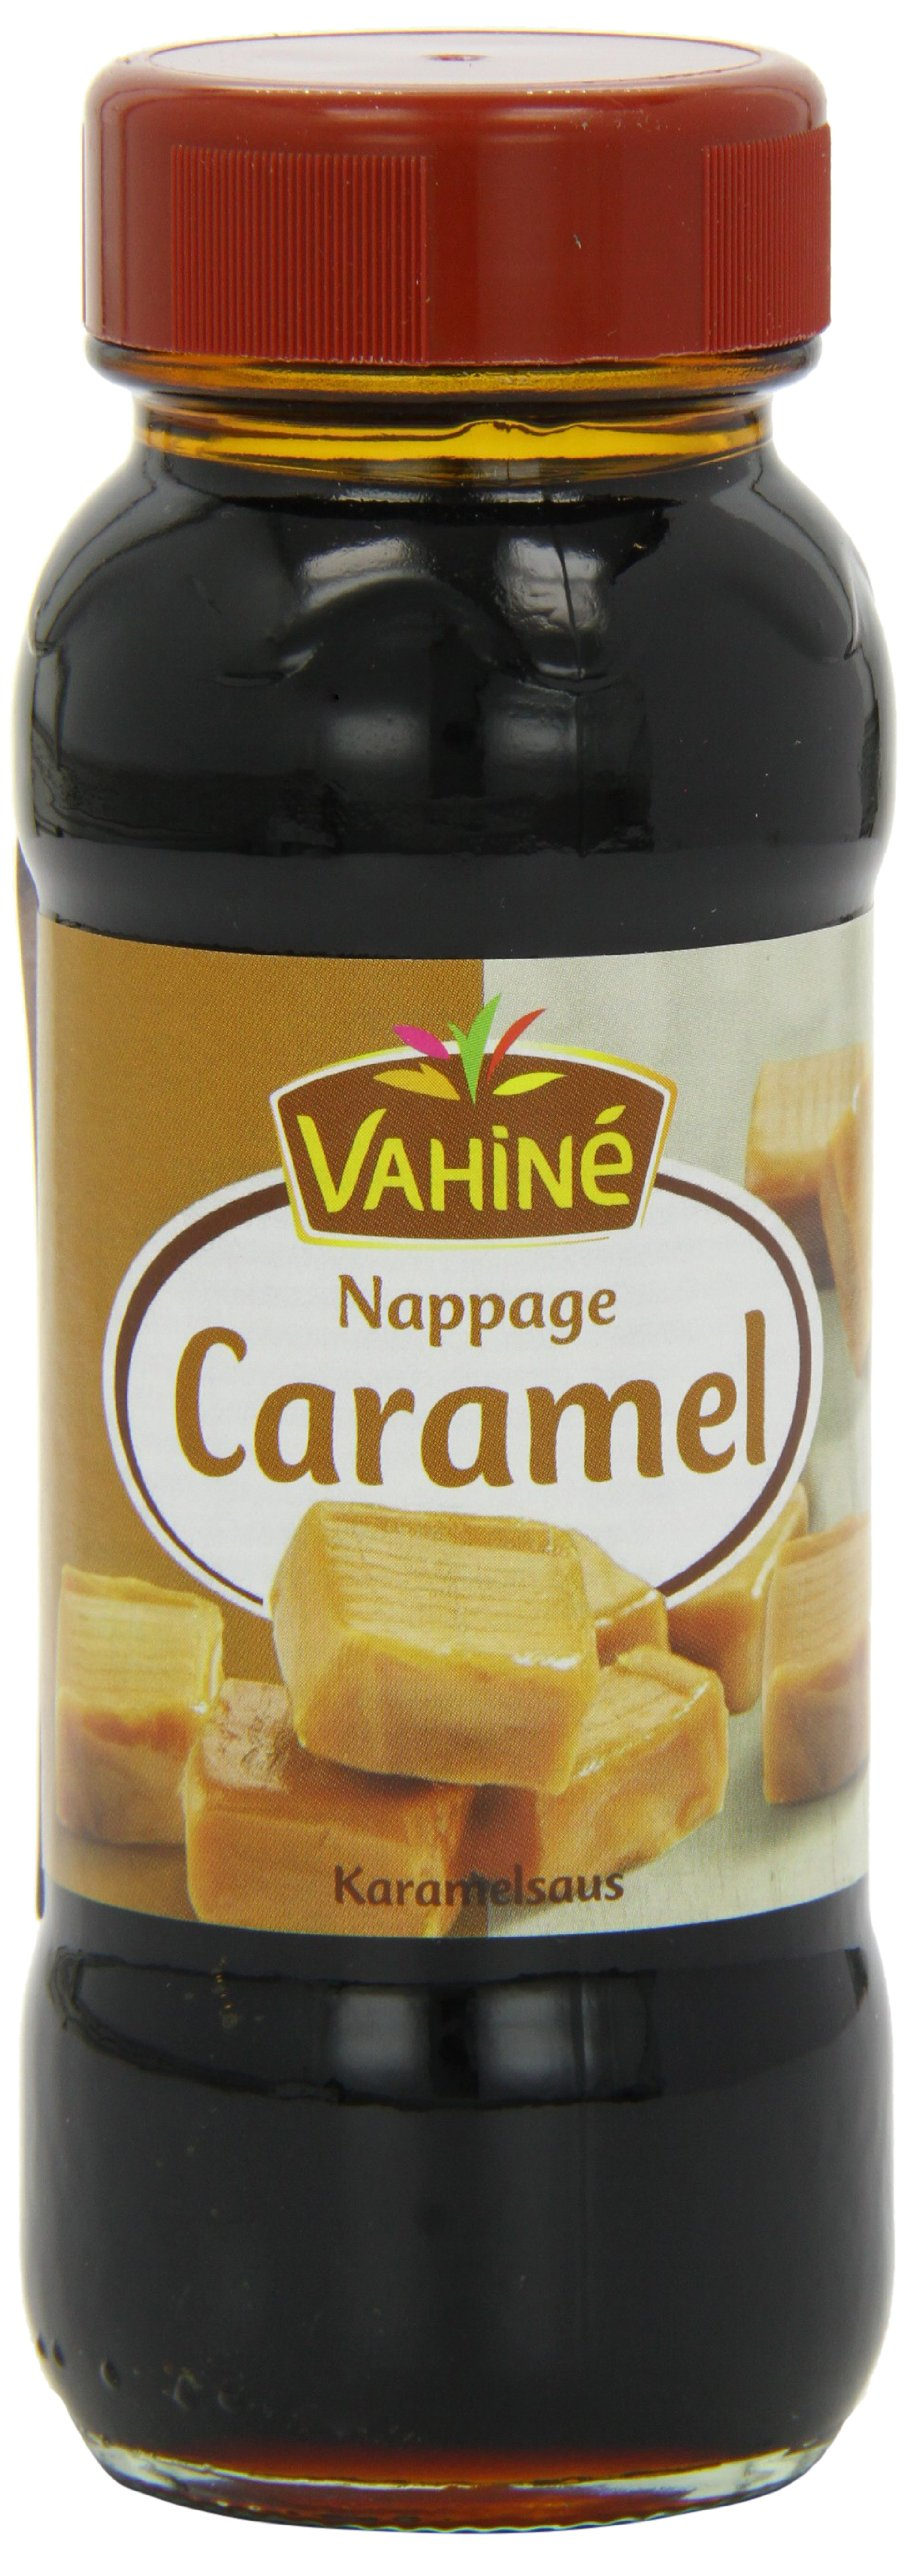 Vahine Liquid Caramel Bottle 210 g (Pack of 3)